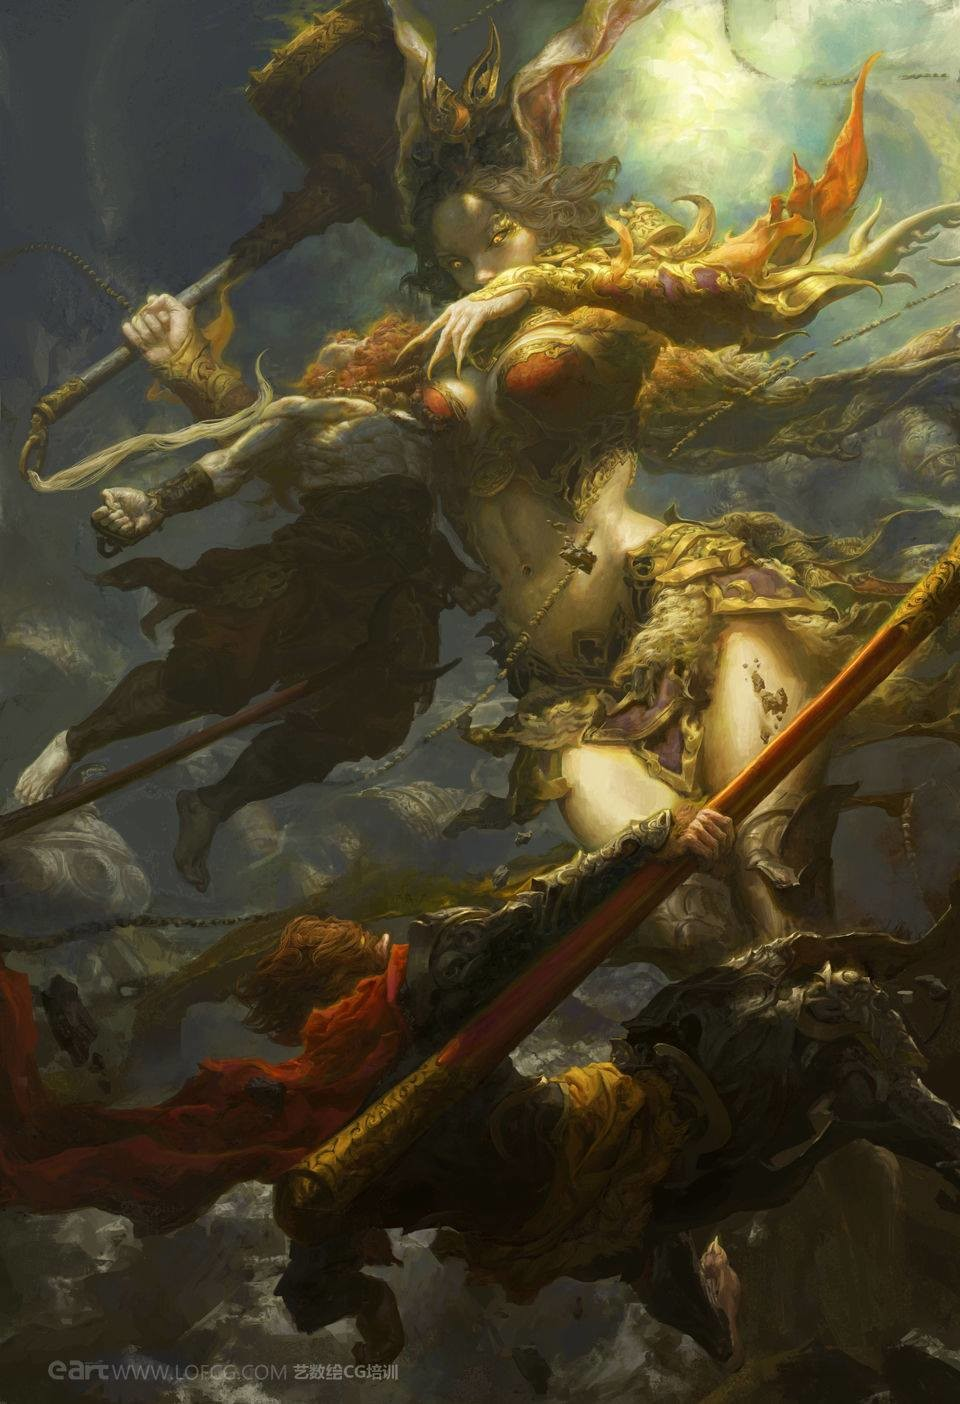 Fenghua zhong queen of the monkeys